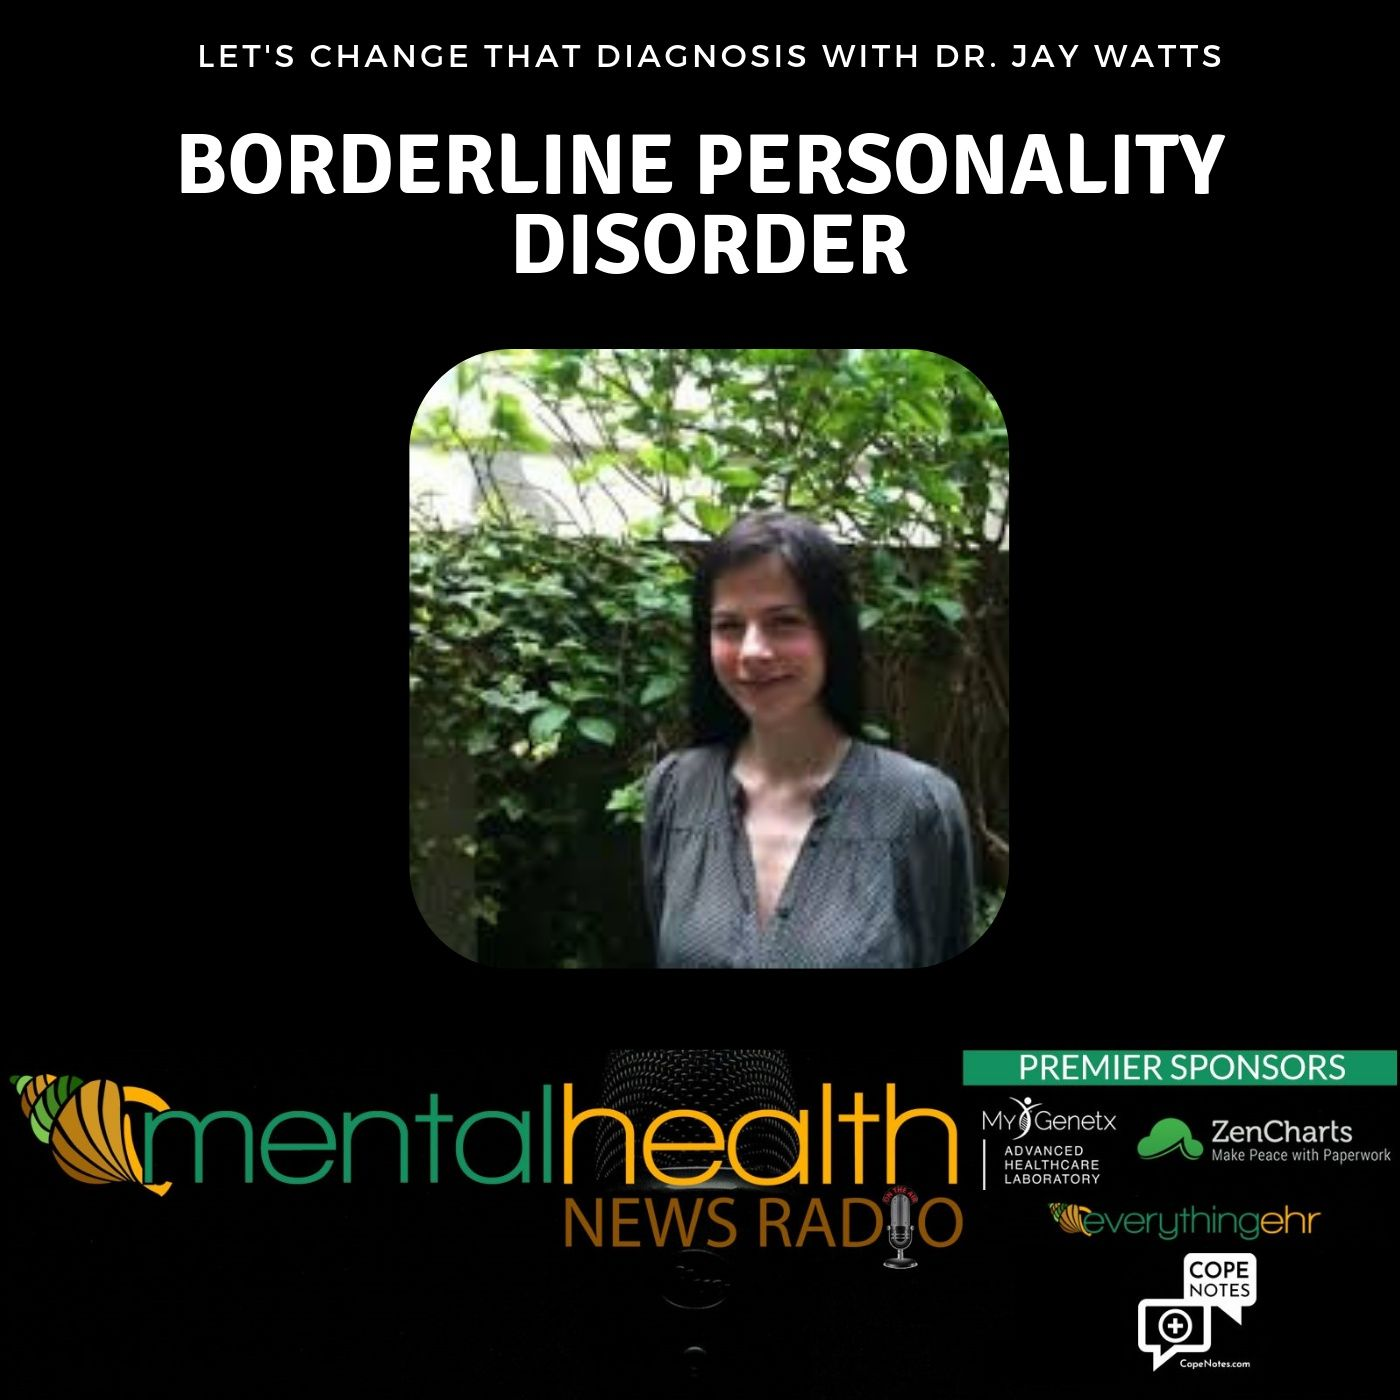 Mental Health News Radio - Borderline Personality Disorder: Let's Change That Diagnosis with Dr. Jay Watts